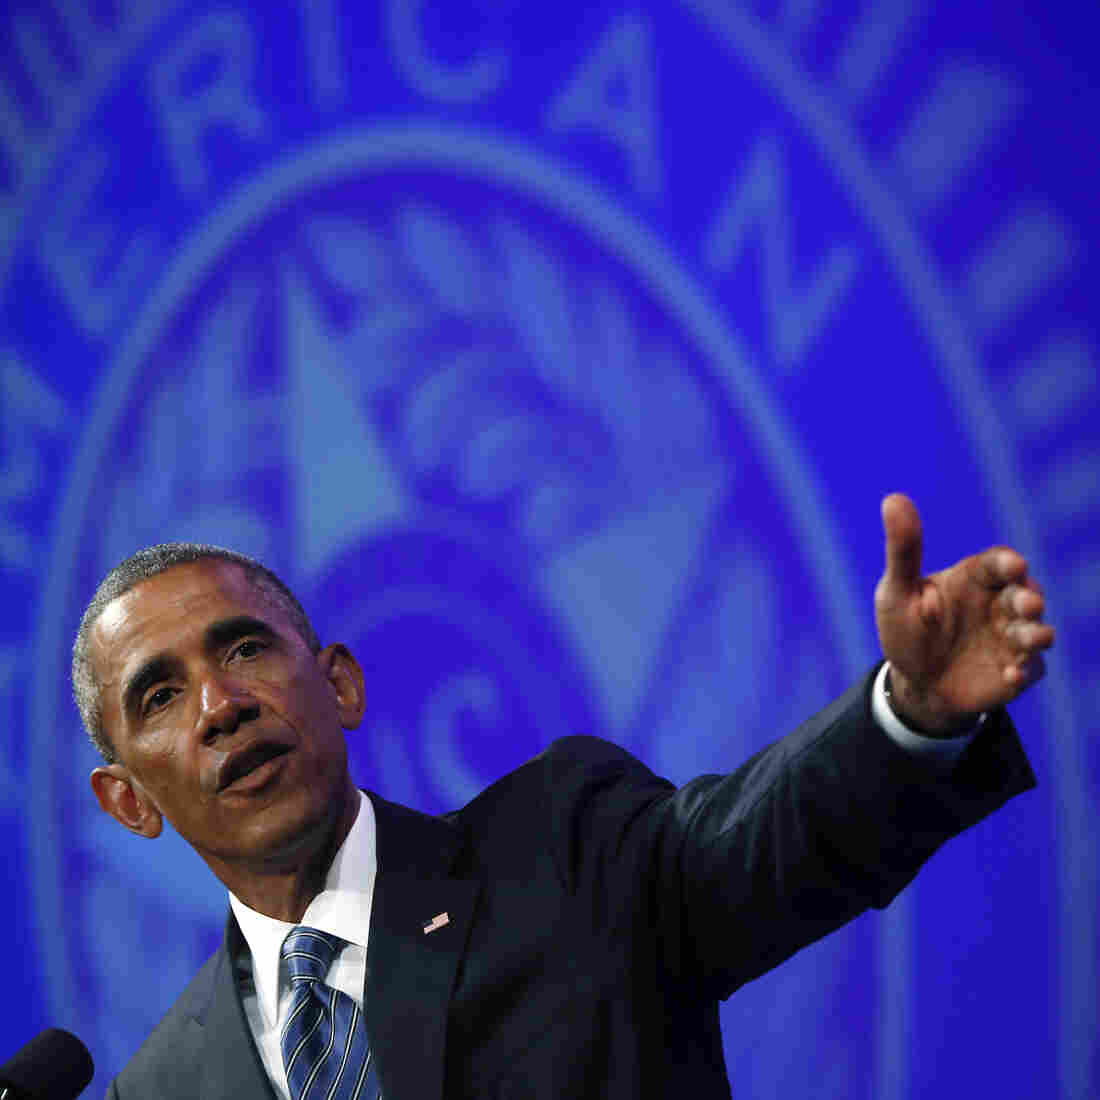 Obama Considers Widening Strikes Against Islamic State Militants